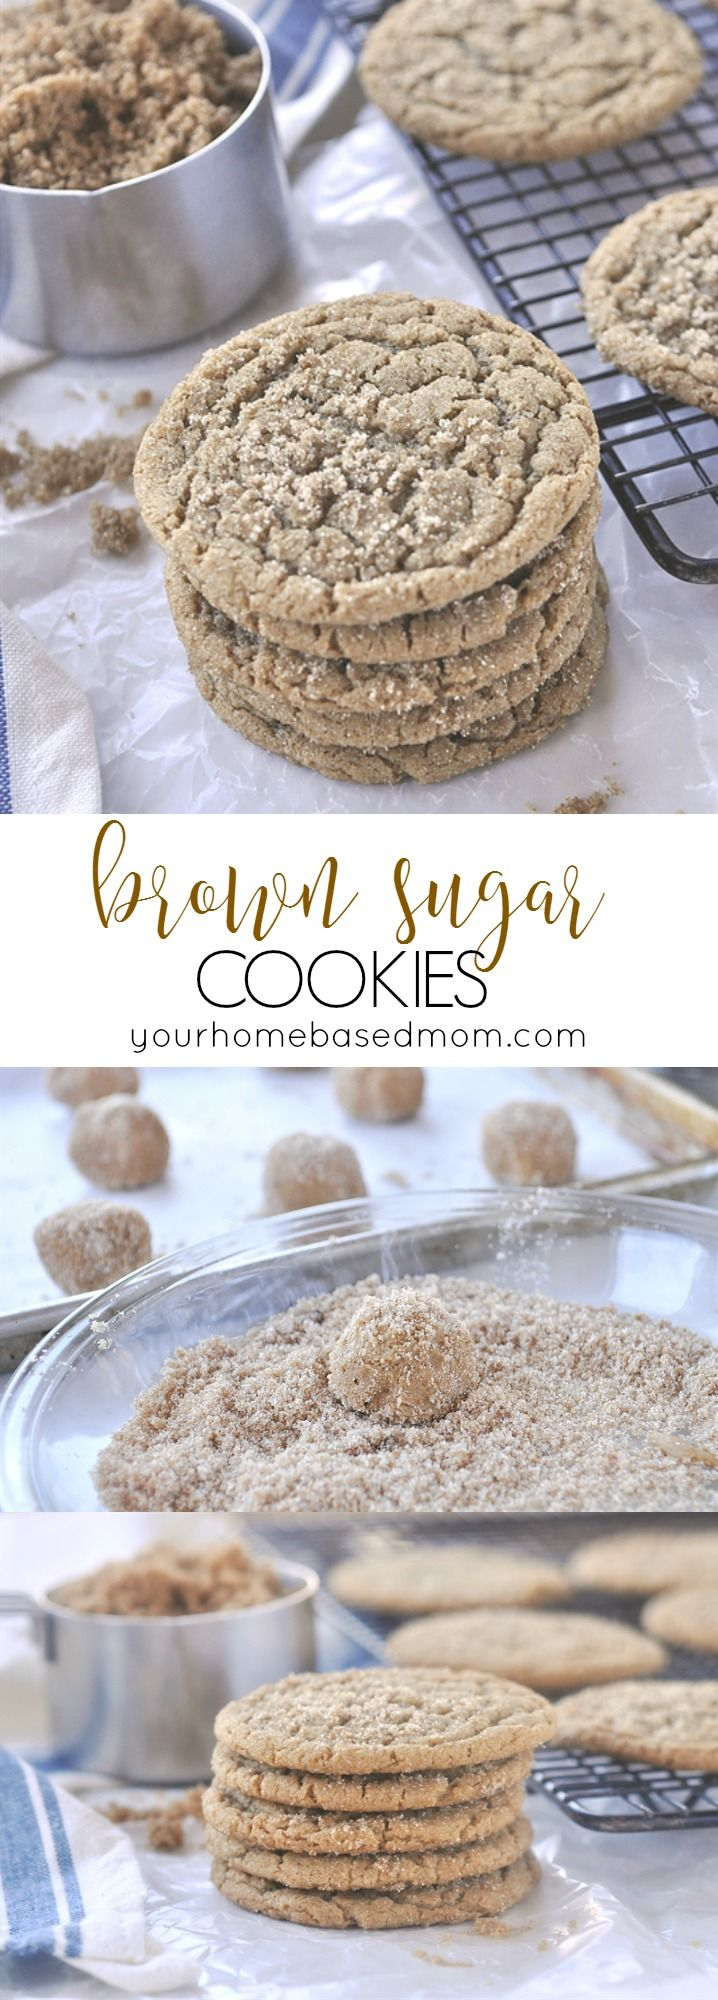 Brown Sugar Cookies are full of amazing flavor and have perfect texture. @yourhomebasedmom.com